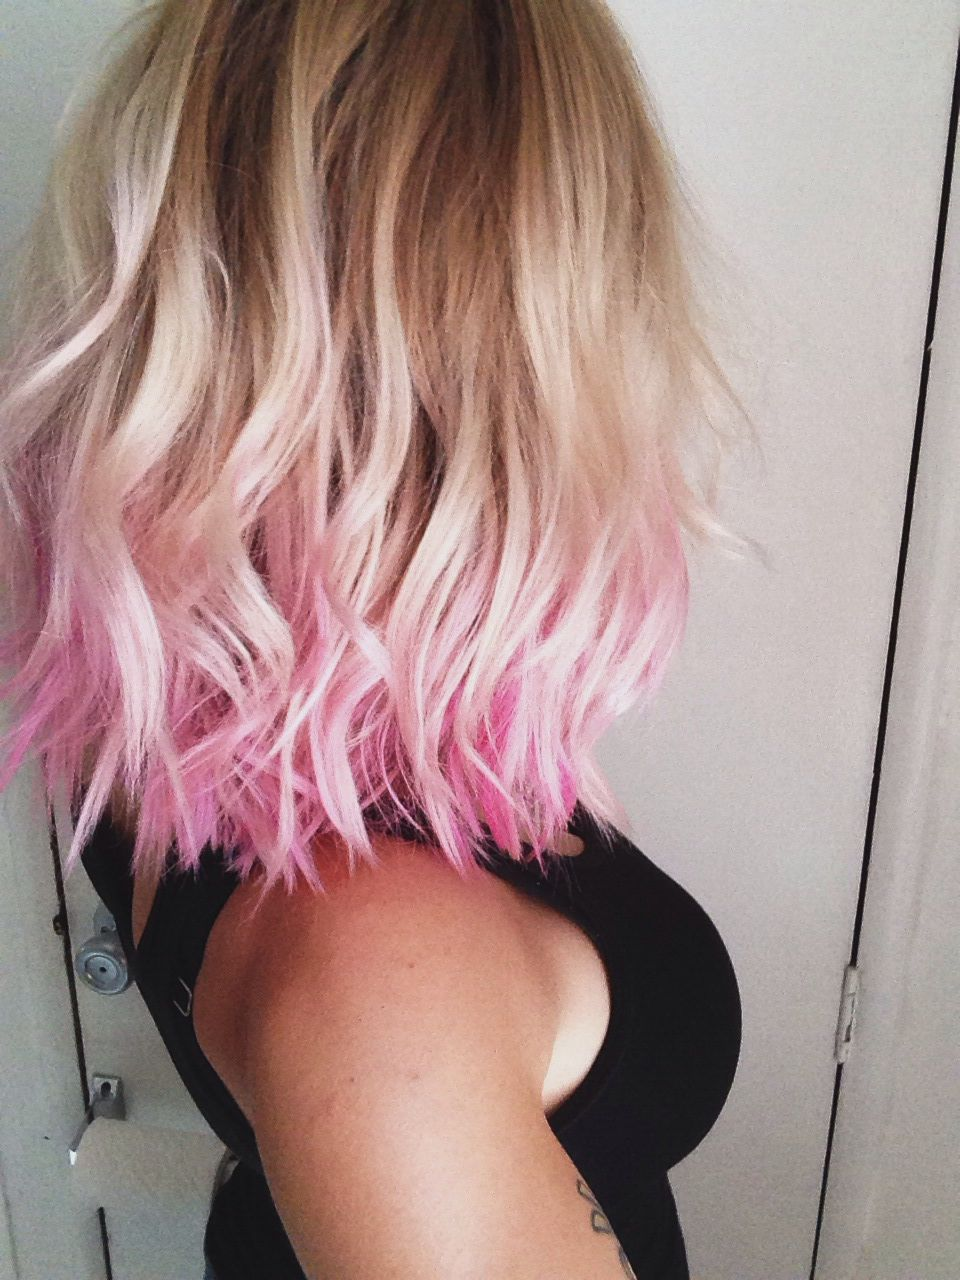 Blonde to pink ombré   Hair by Grace Penhale hairstylist in Denver, CO and Los Angeles, CA   @mydarlinglight